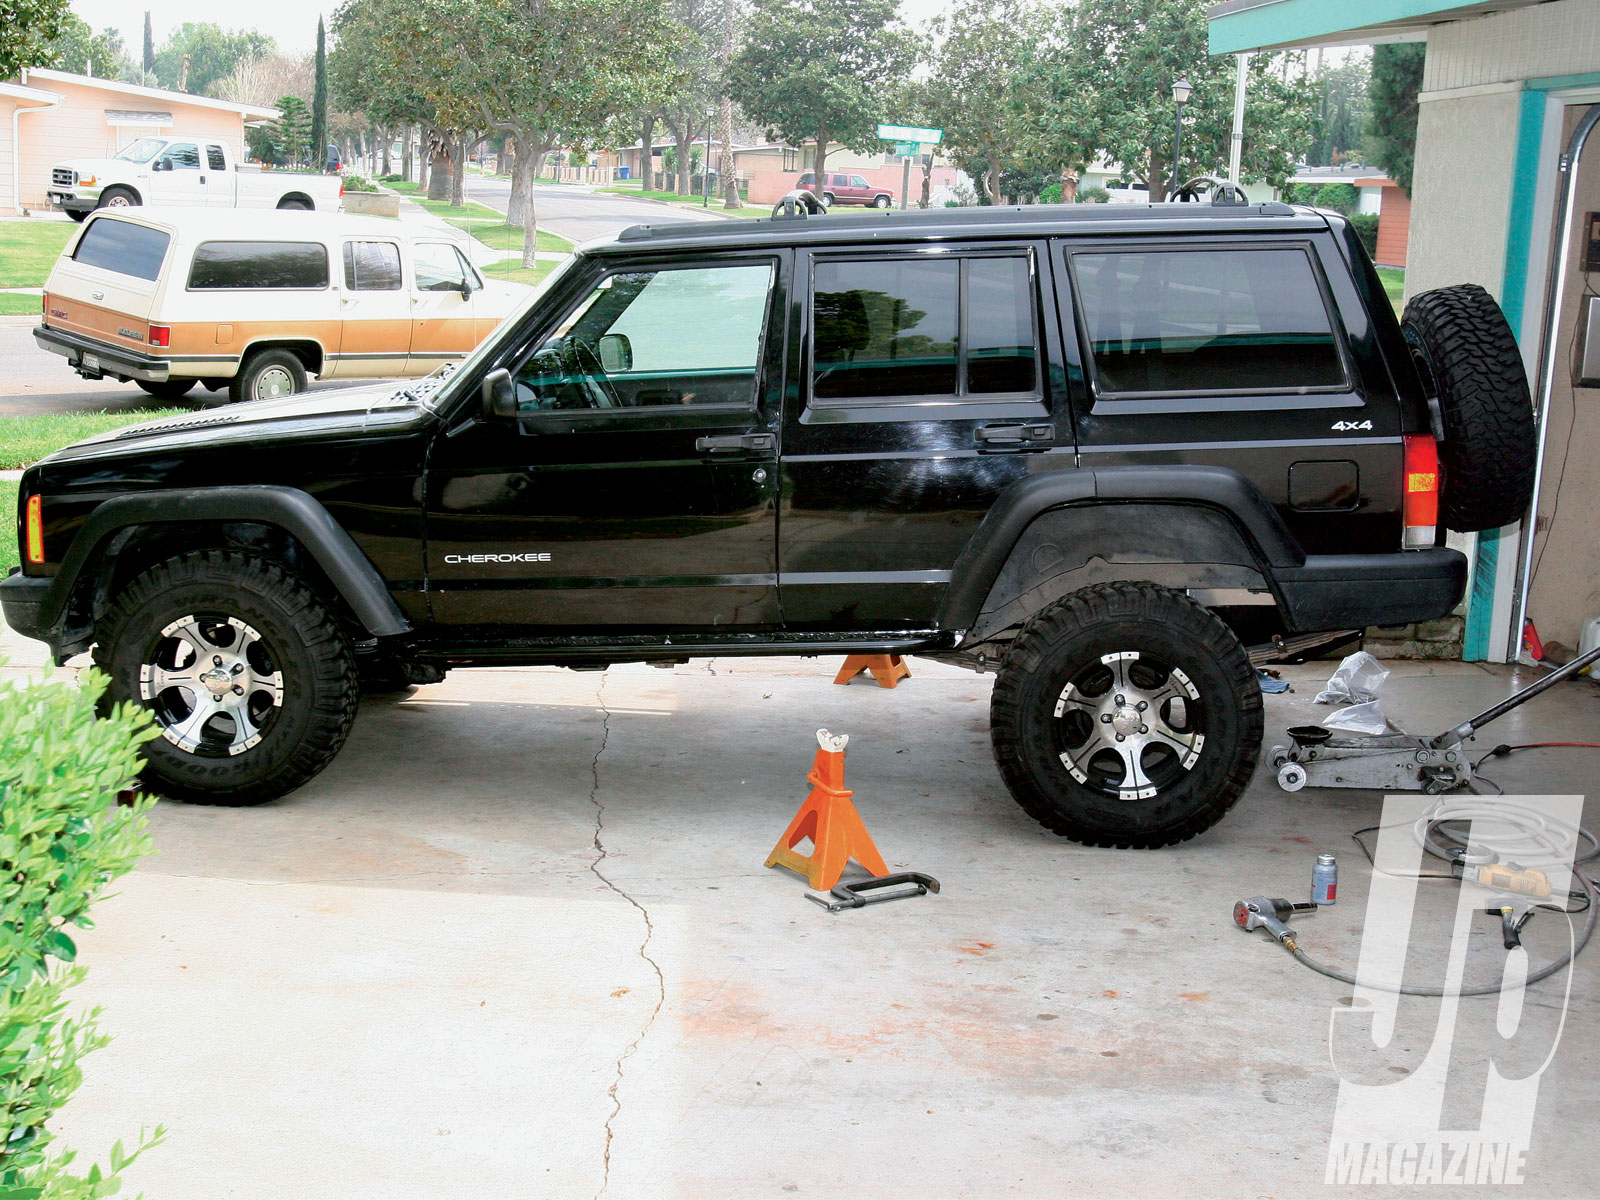 154 1101 01 o+131 1101 boneyard budget boost+jeep cherokee side shot